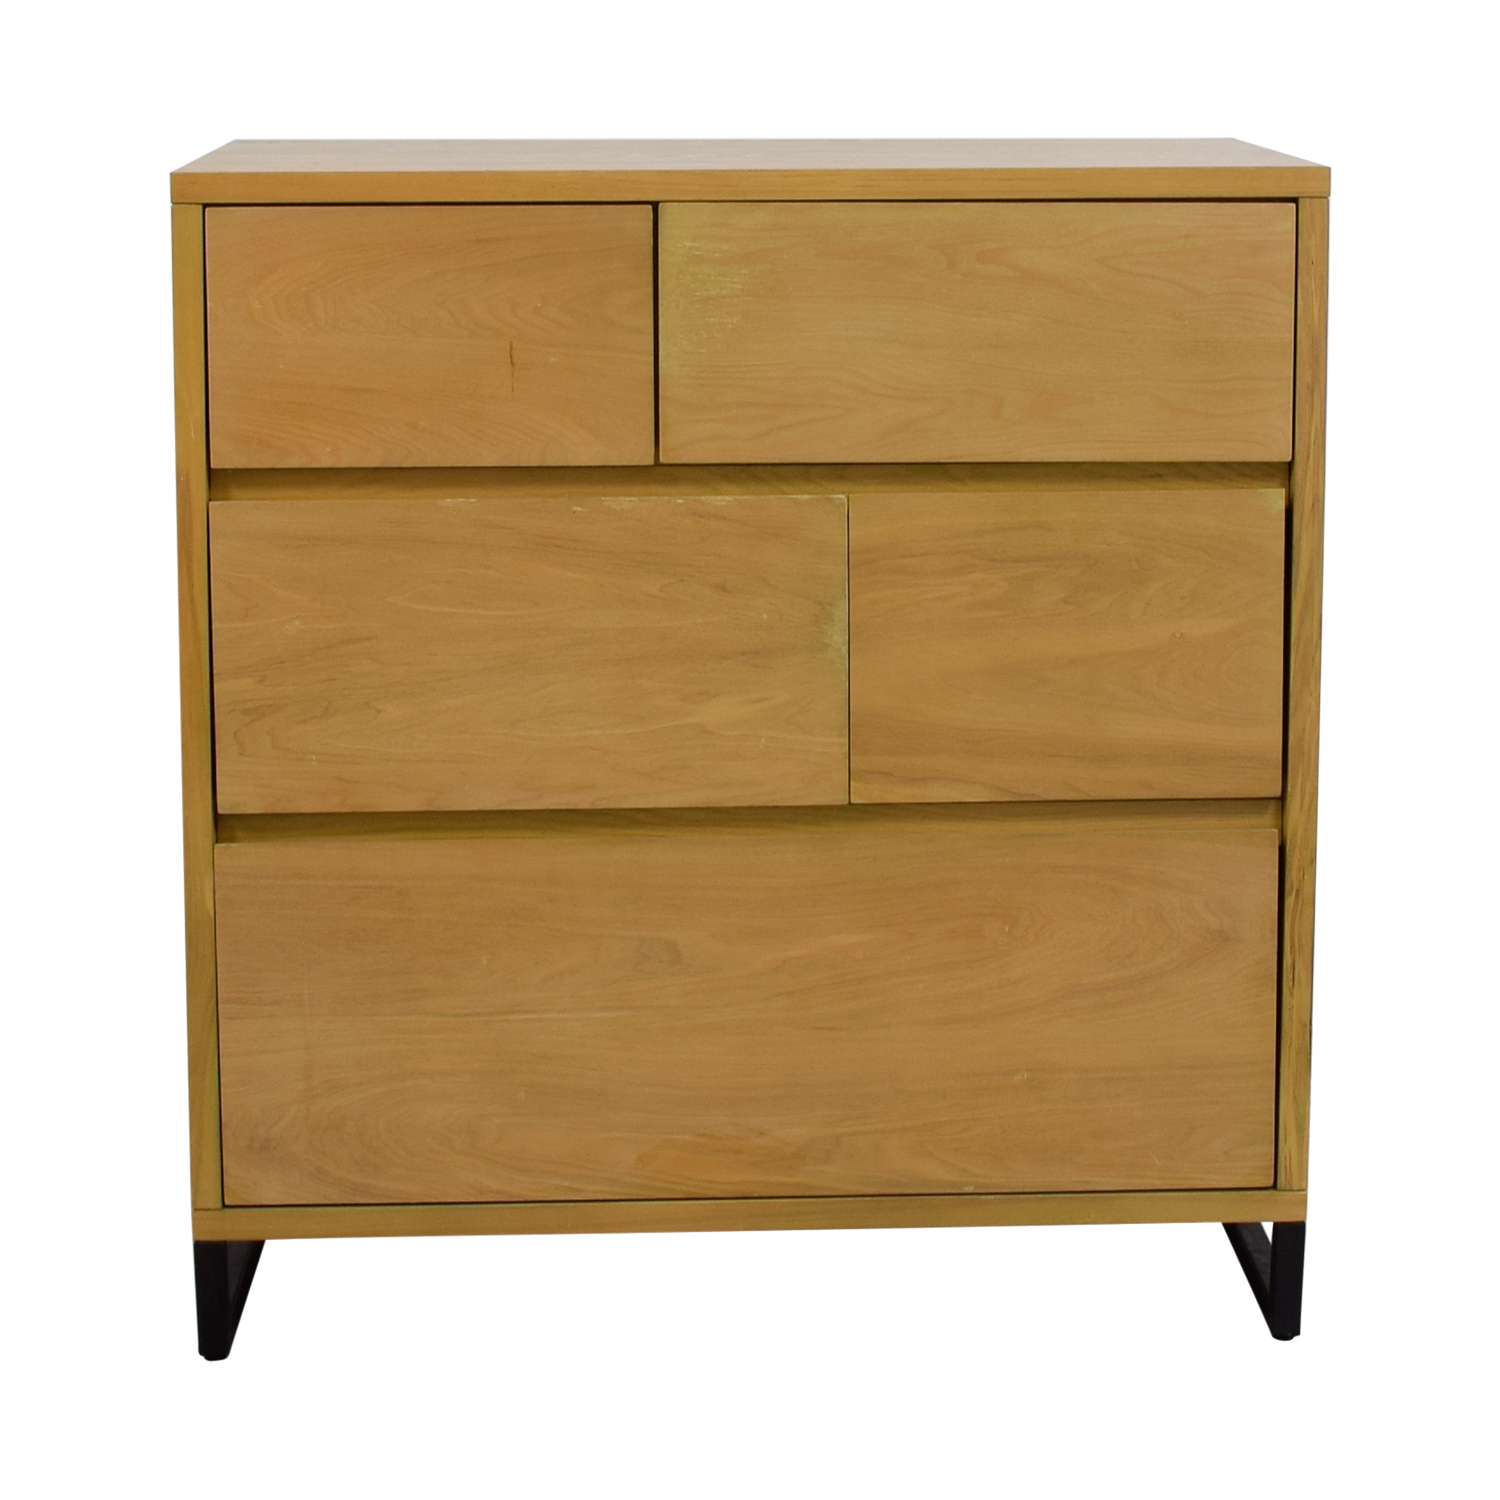 West Elm West Elm Hudson Four-Drawer Dresser for sale